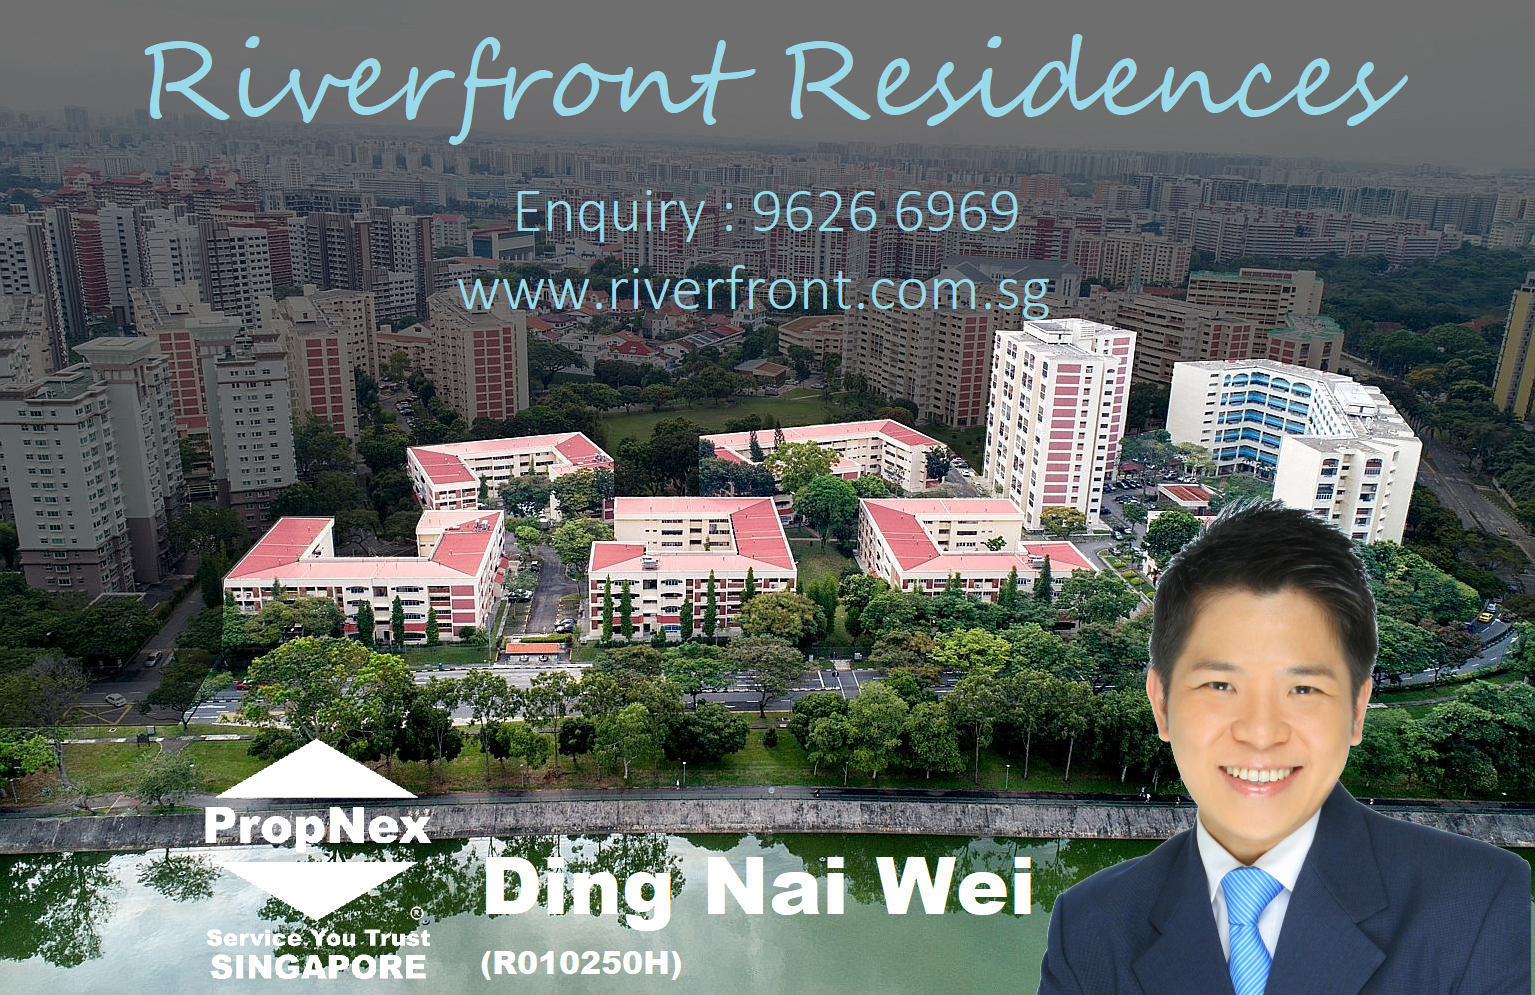 Riverfront Residences - Contact Us